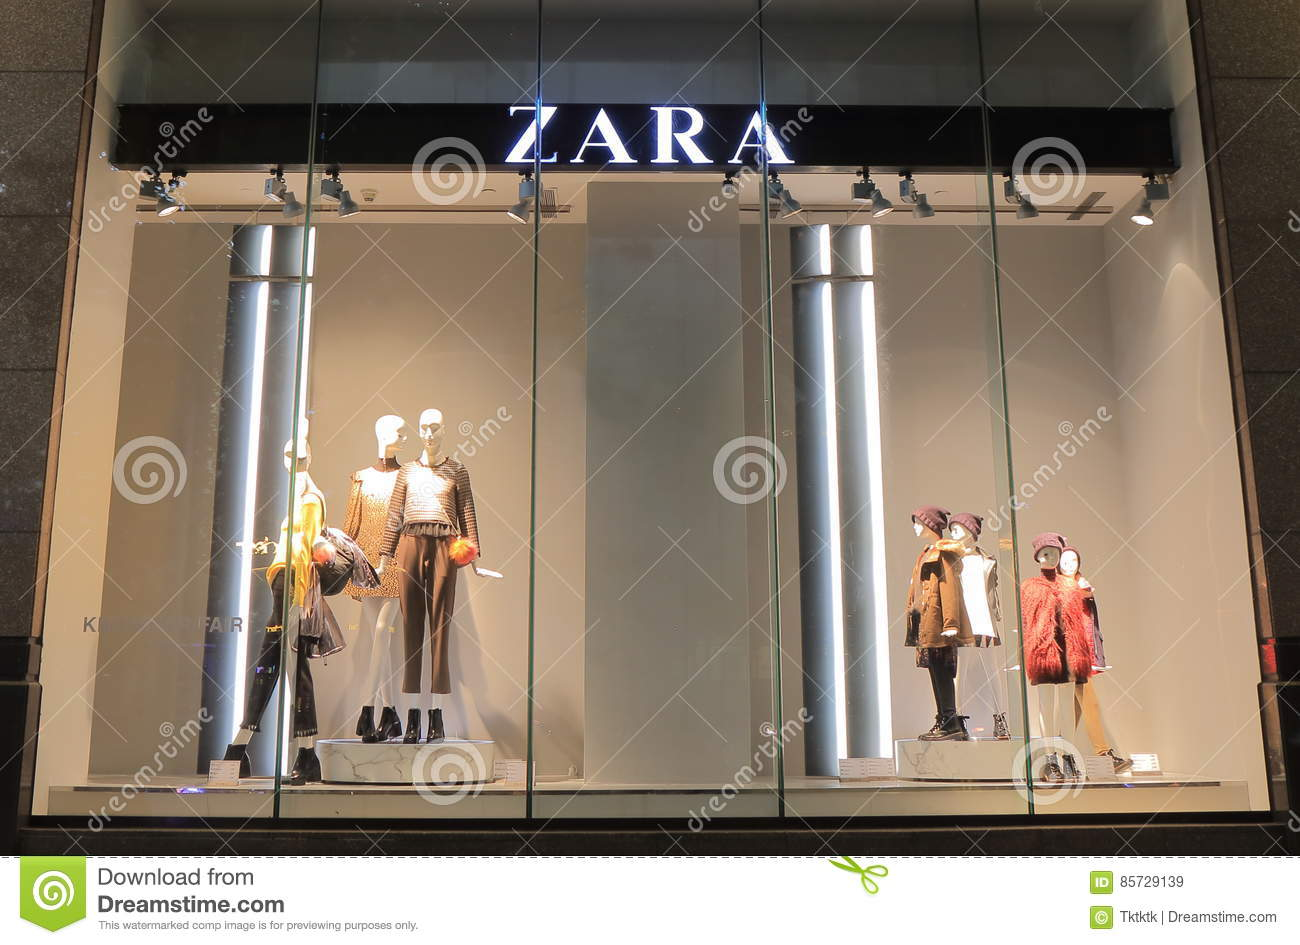 Discussion on this topic: Zara Isnt the Only Great Spanish Brand , zara-isnt-the-only-great-spanish-brand/